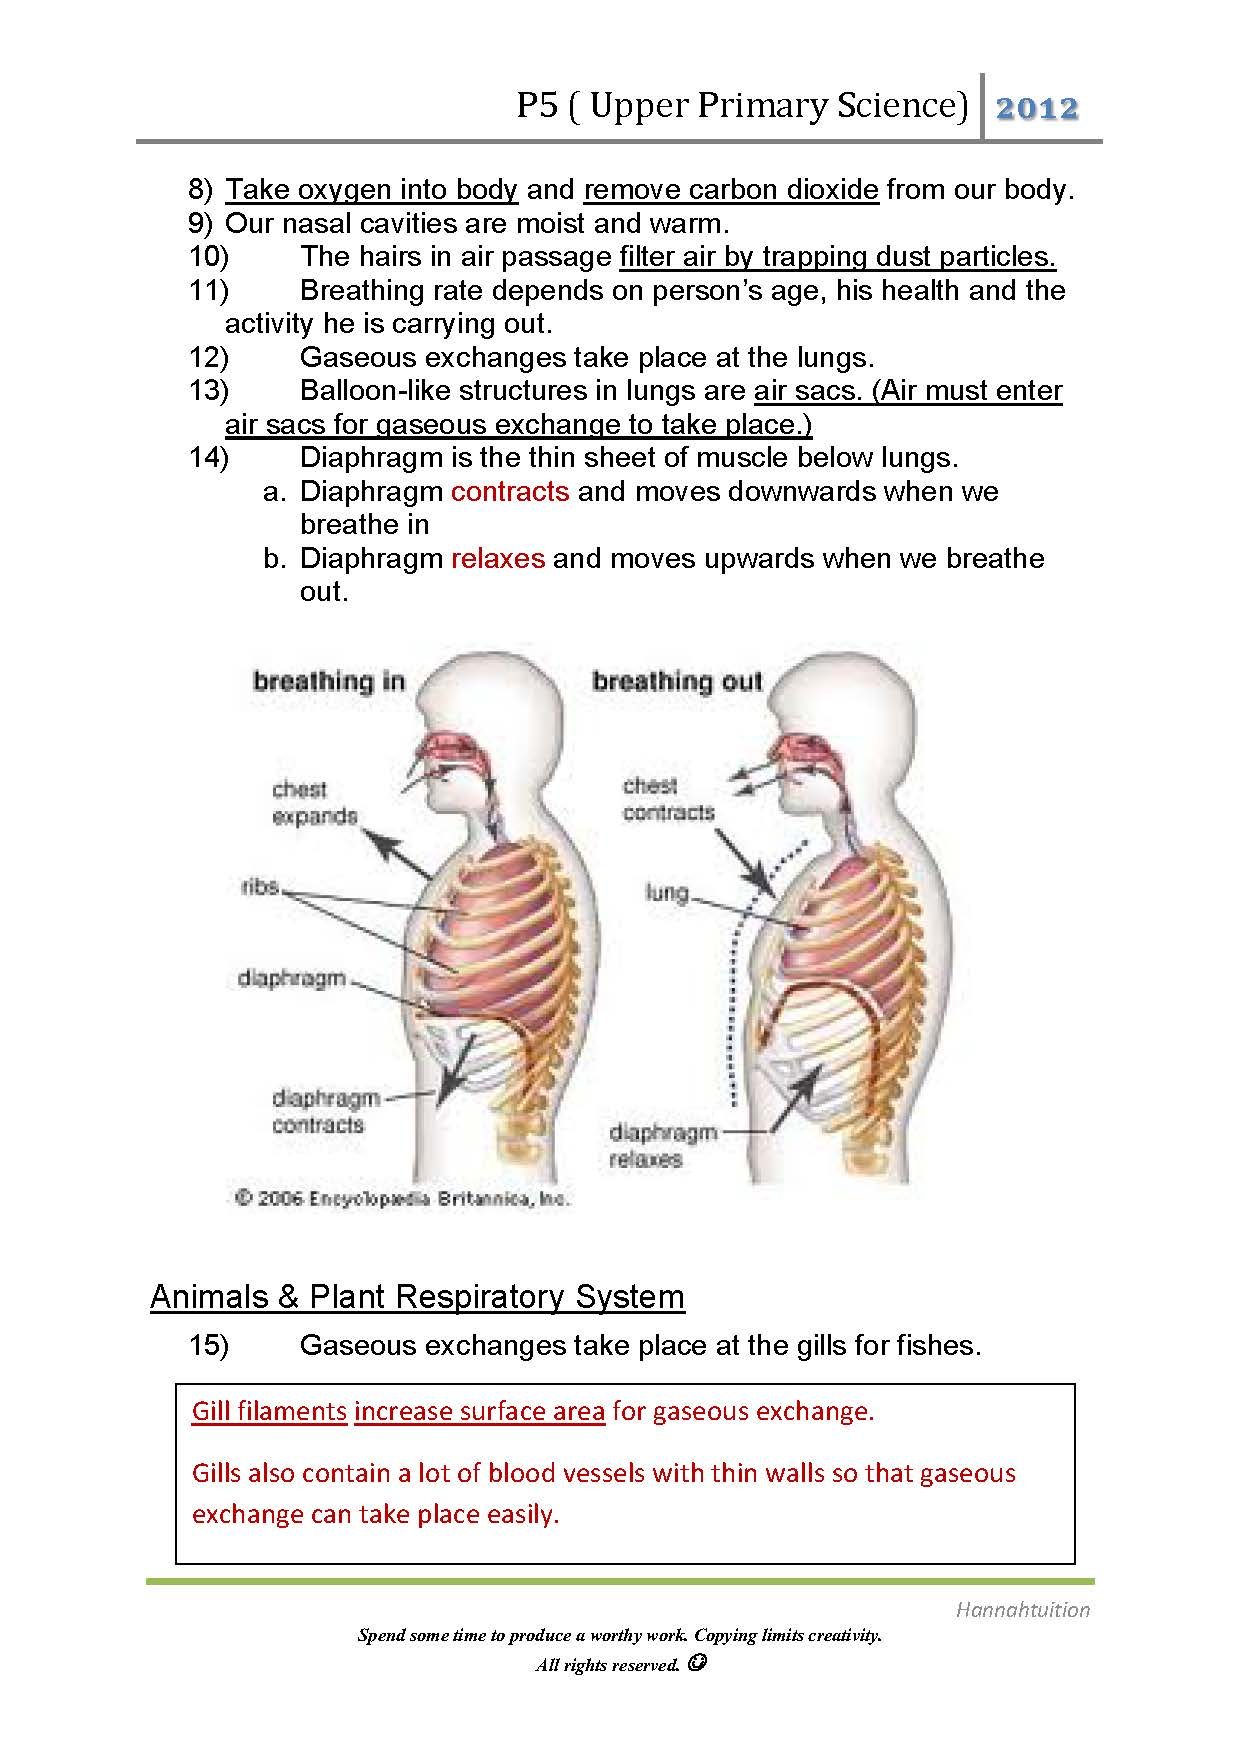 P5 Air And Respiratory System Page 2 Hannahtuition